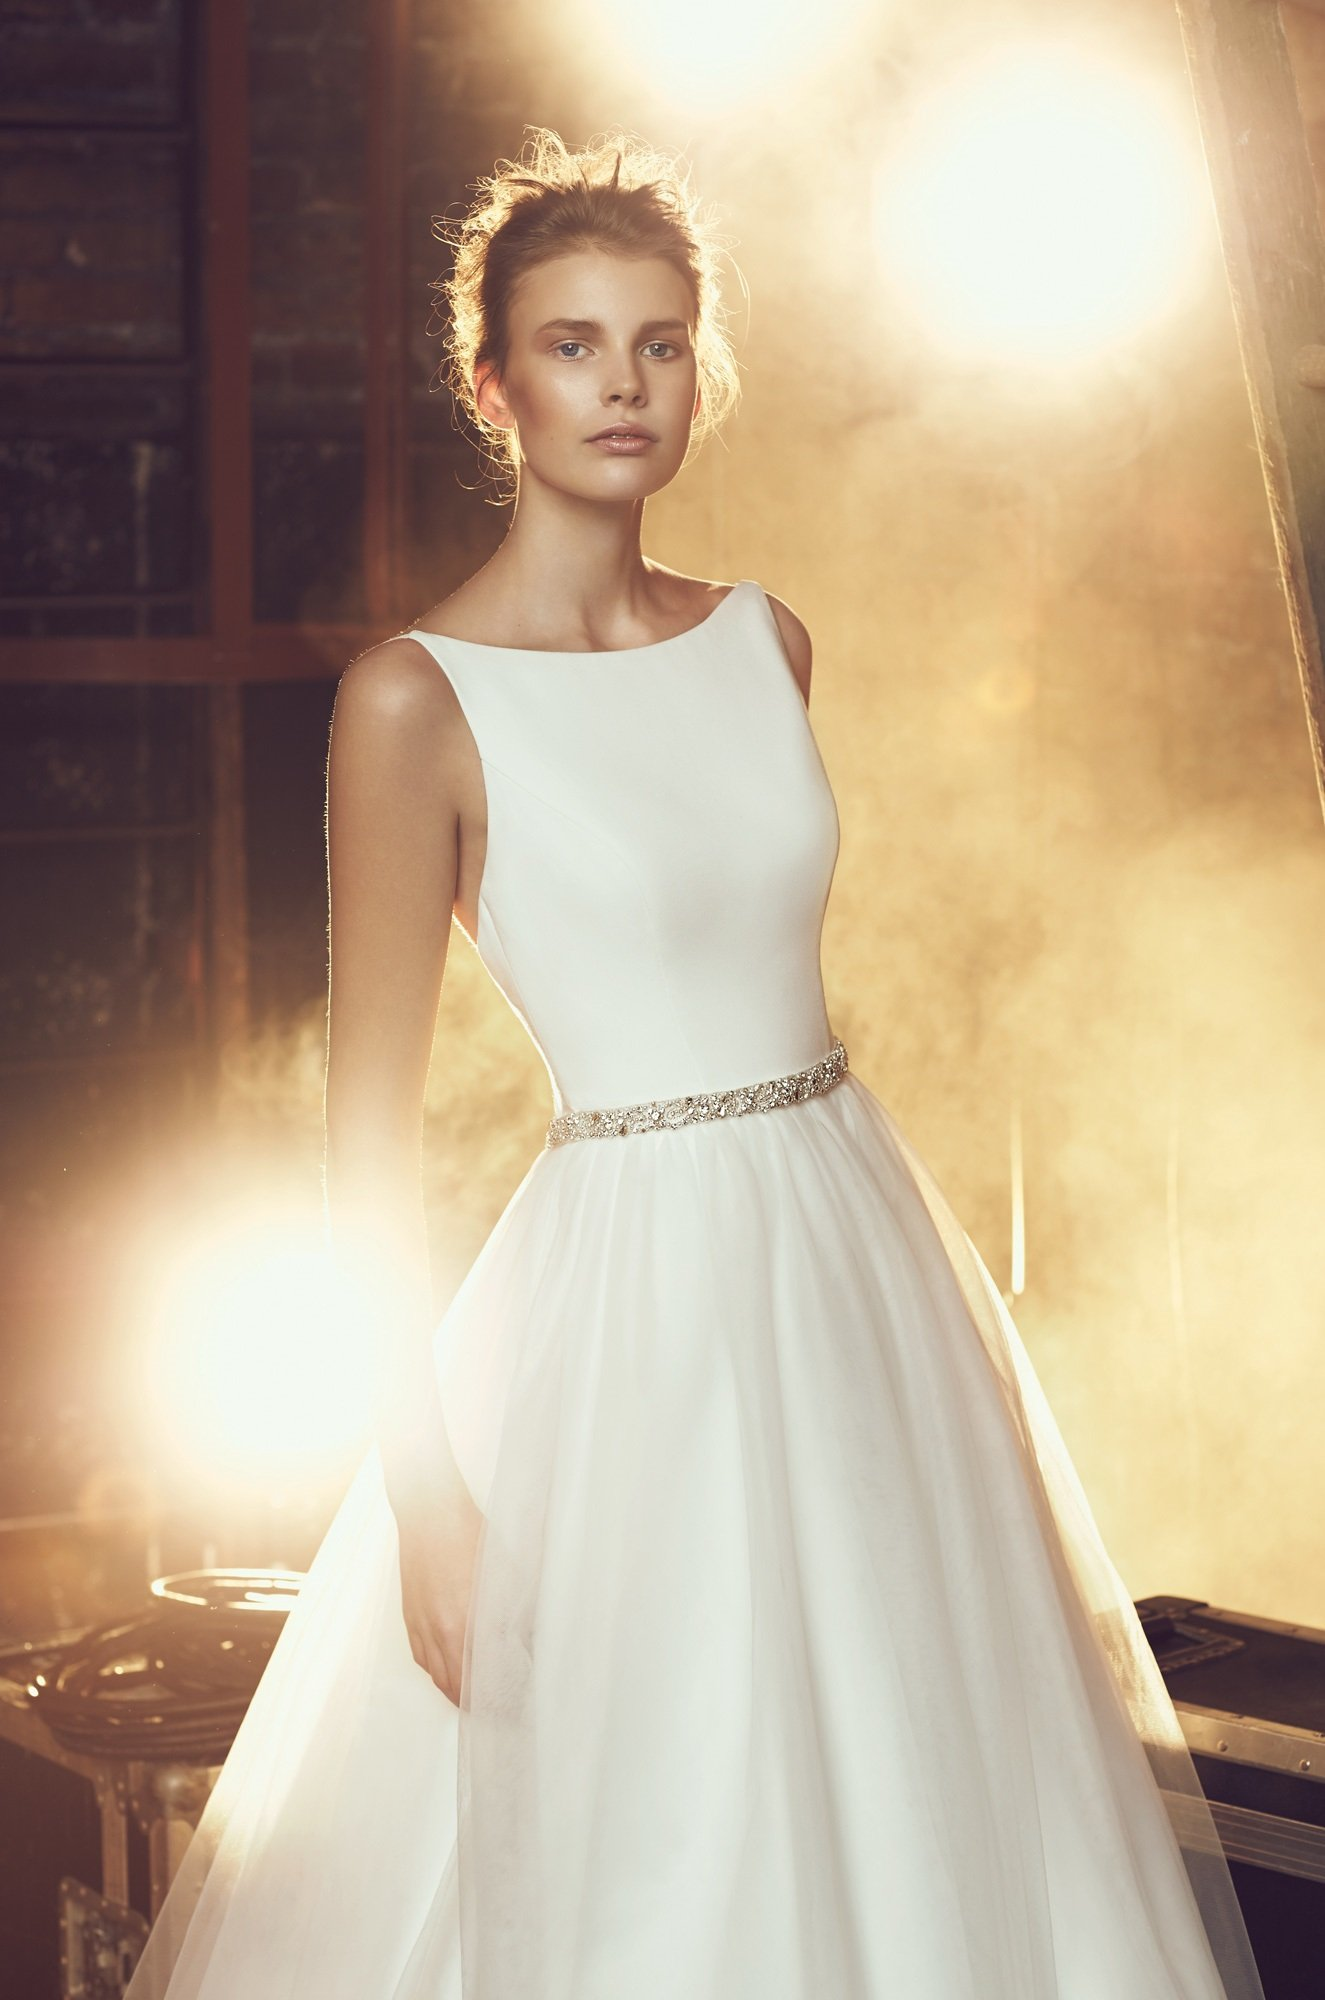 Tulle Skirt Wedding Dress Style 2079 Mikaella Bridal